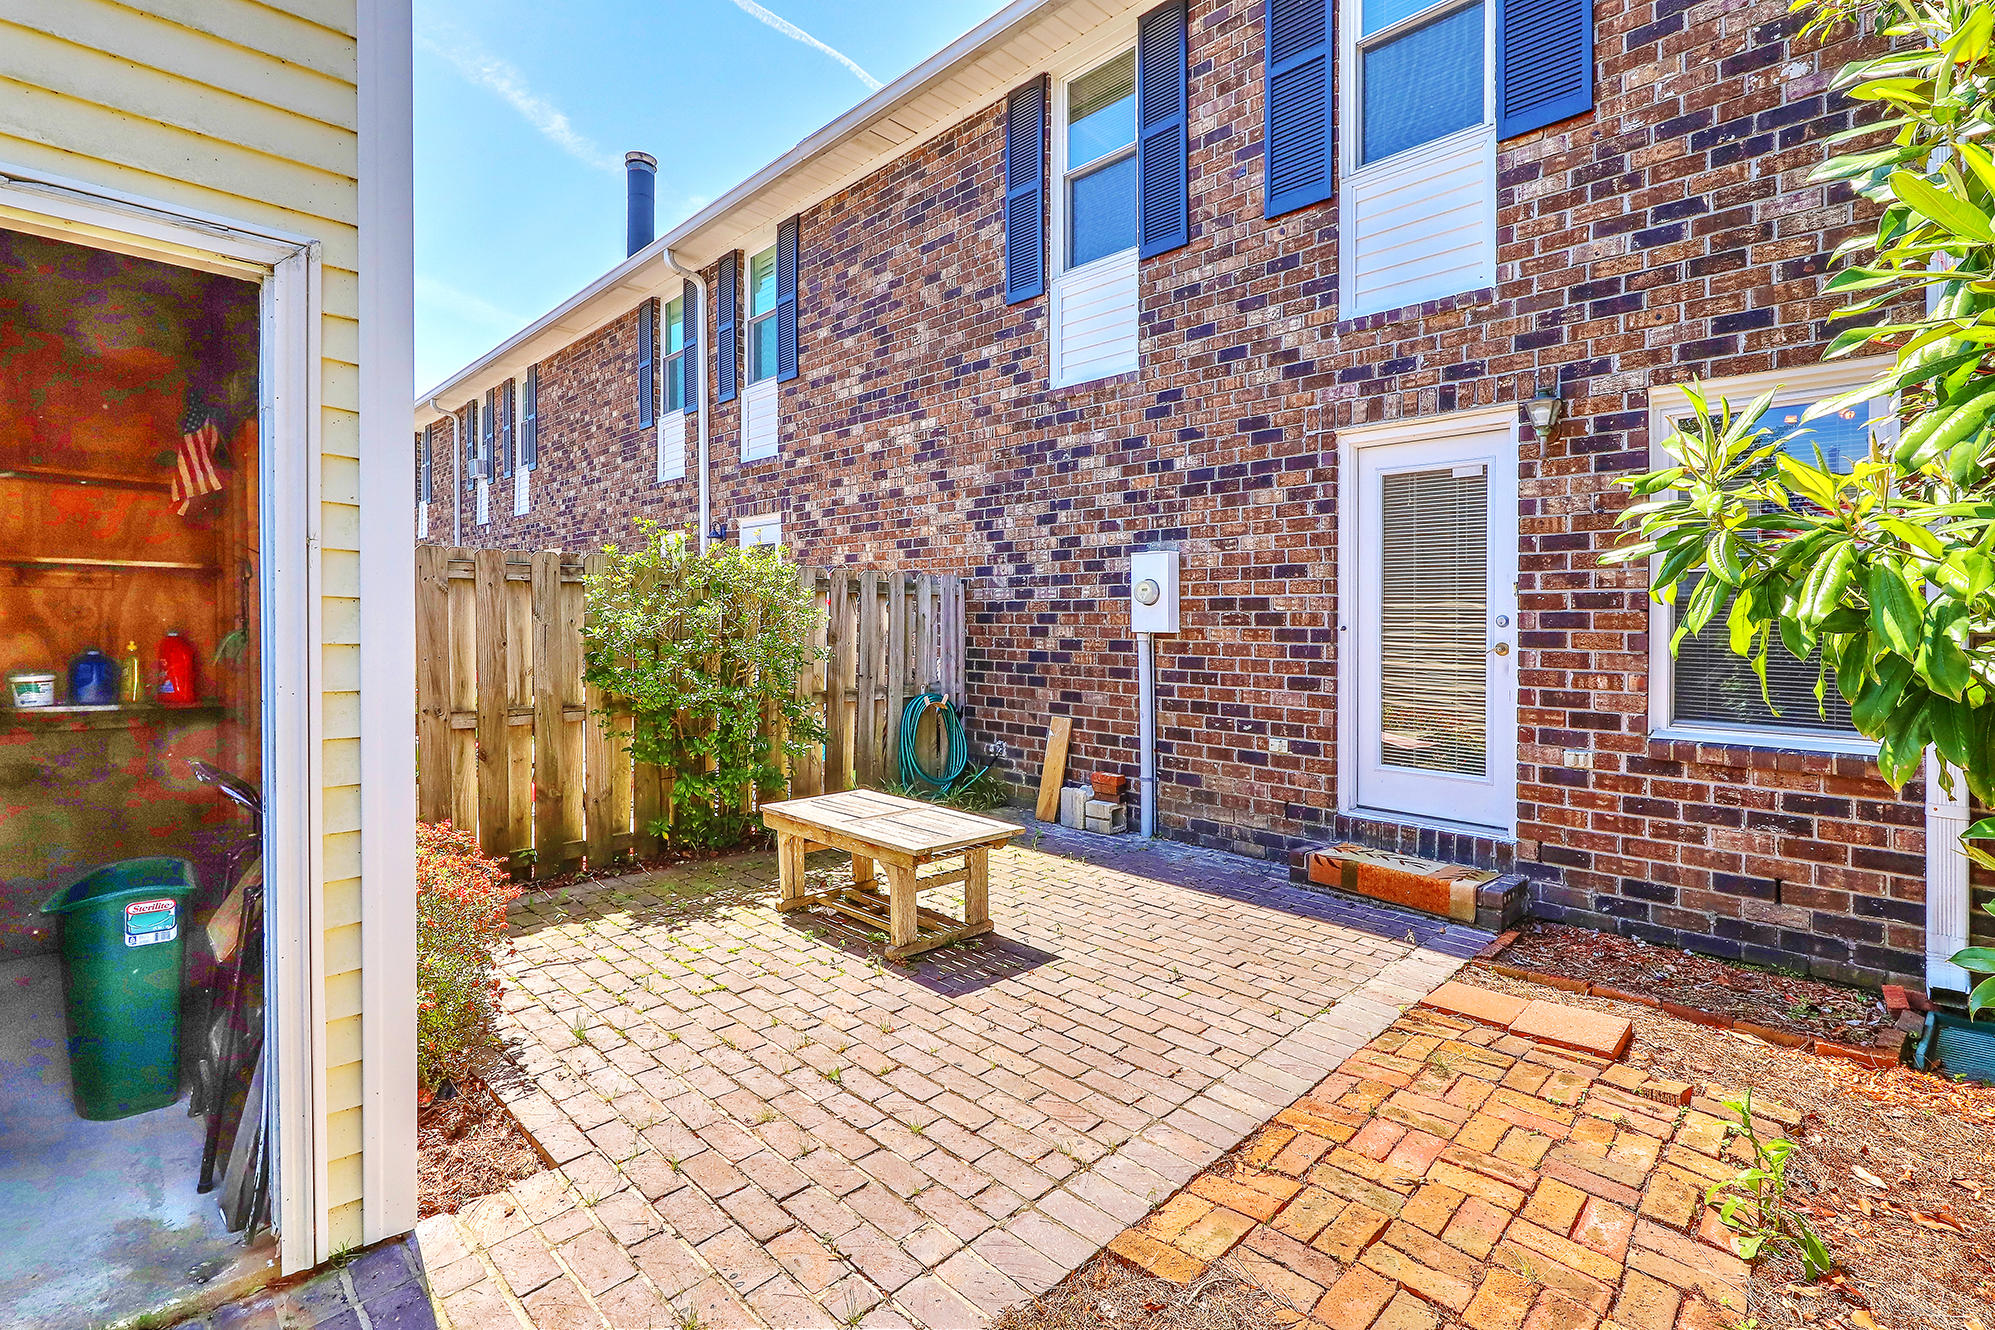 Old Towne Villas Homes For Sale - 2921 Cathedral, Charleston, SC - 8